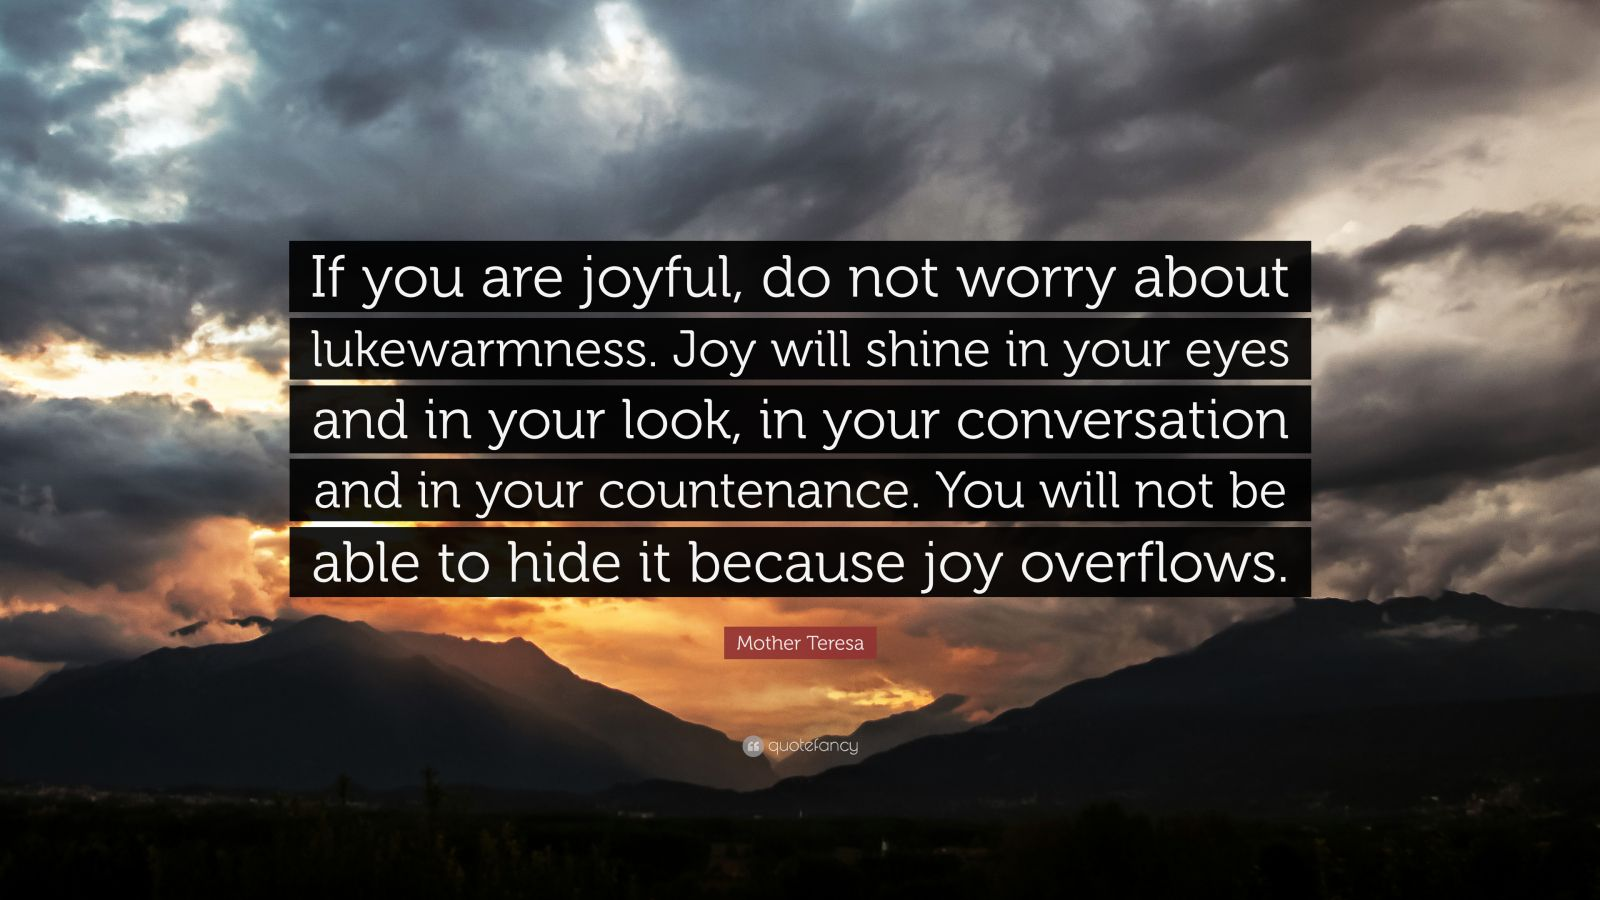 "Mother Teresa Quote: ""If you are joyful, do not worry about lukewarmness. Joy will shine in your eyes and in your look, in your conversation and in your countenance. You will not be able to hide it because joy overflows."""